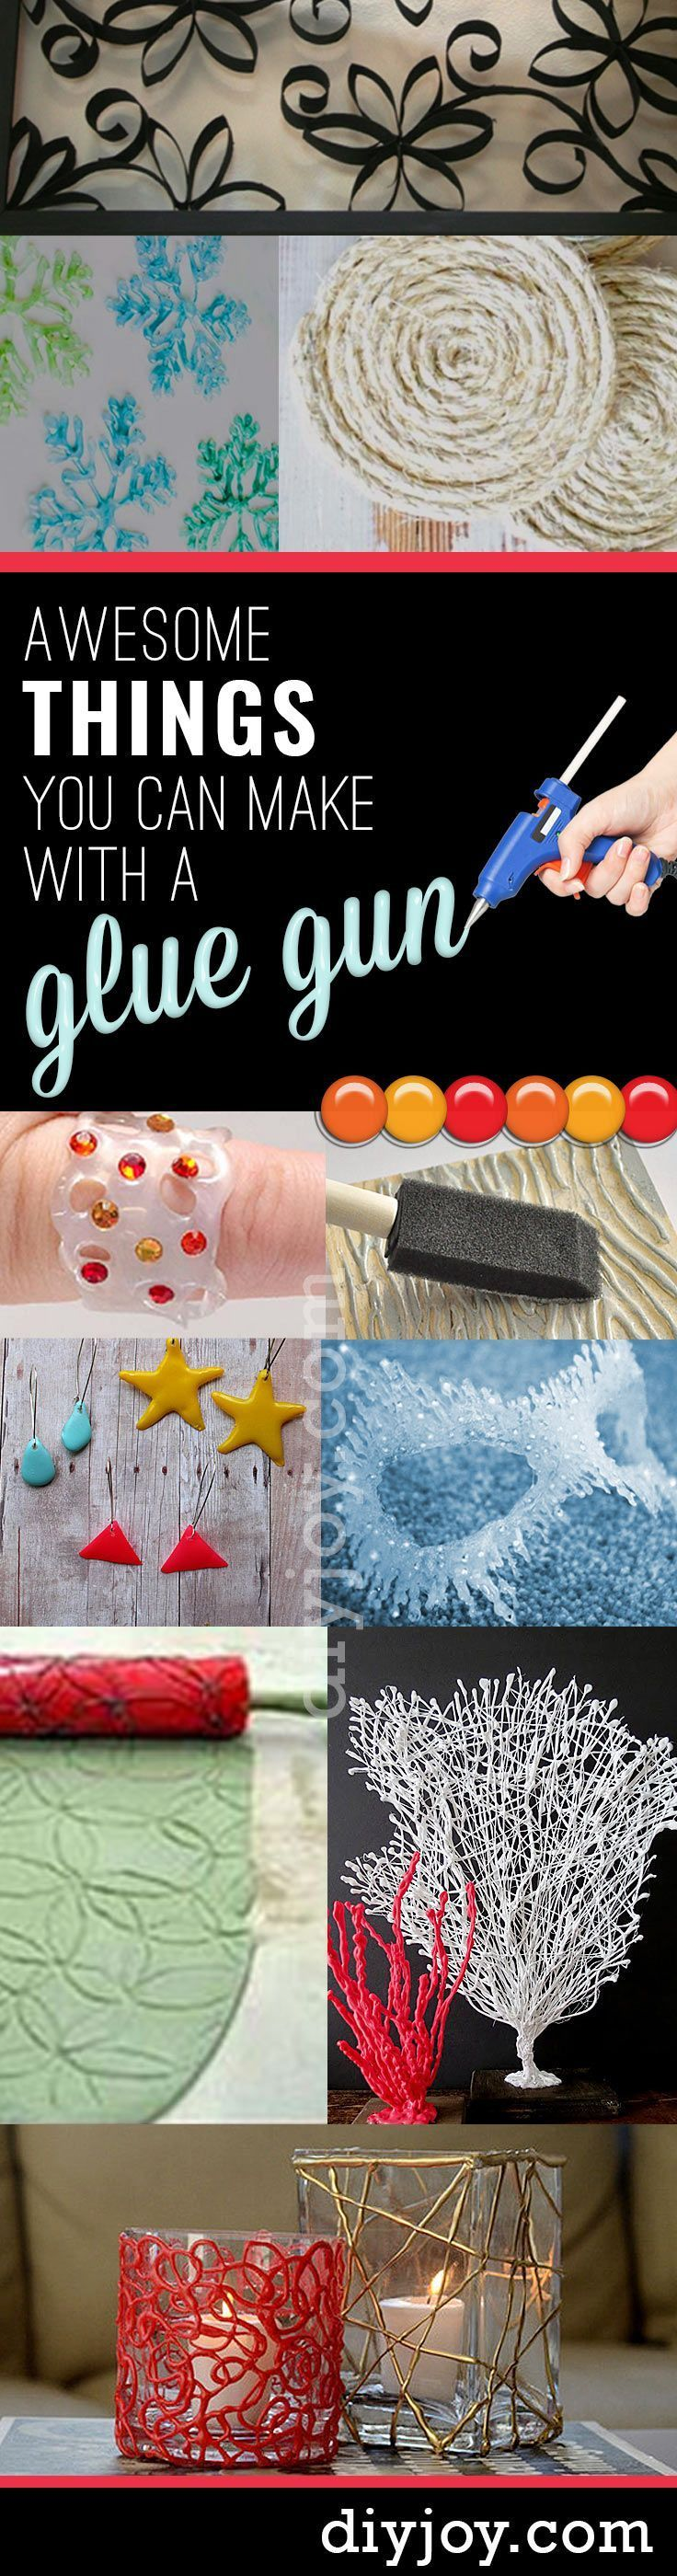 The 25 best ideas about glue gun crafts on pinterest for Neat craft ideas